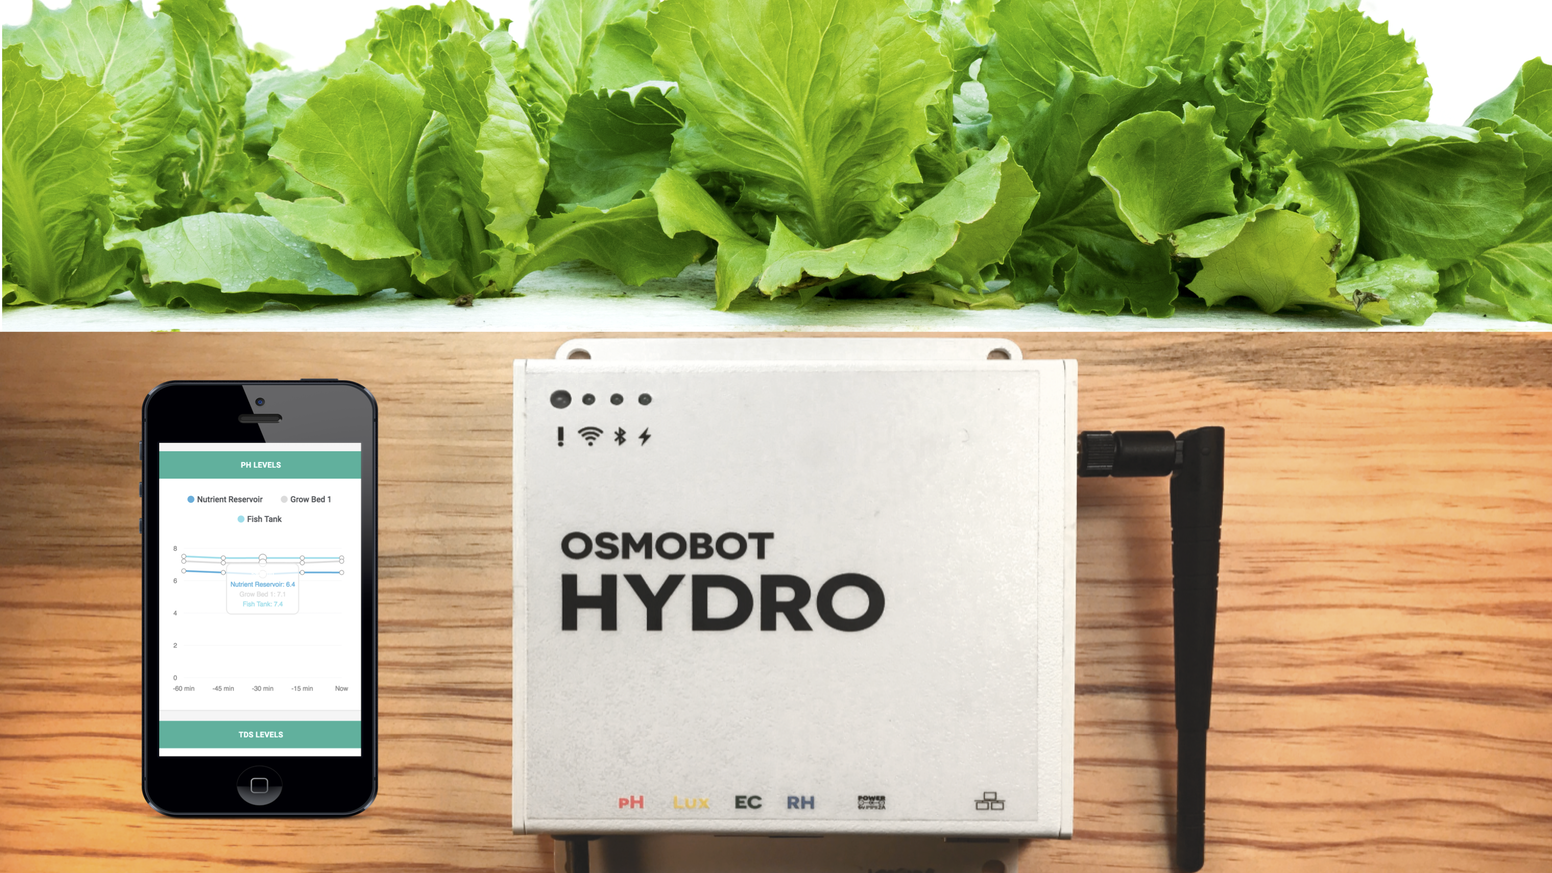 OSMOBOT:  Everything you need to monitor your hydroponic or aquaponic system online. In one box. At the right price.